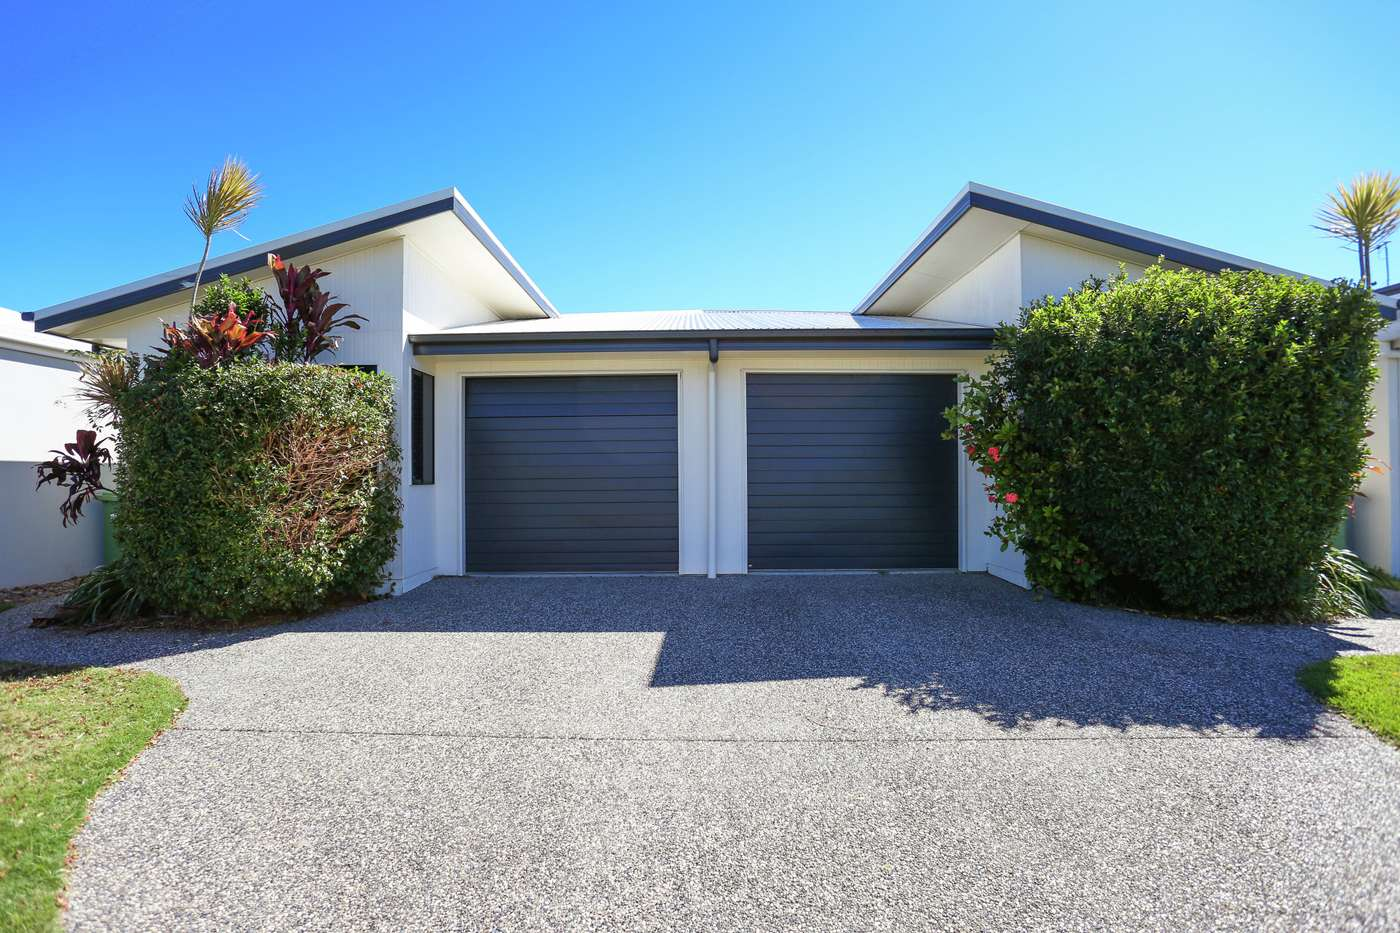 Main view of Homely house listing, 7 Maranark Avenue, Mount Pleasant, QLD 4740